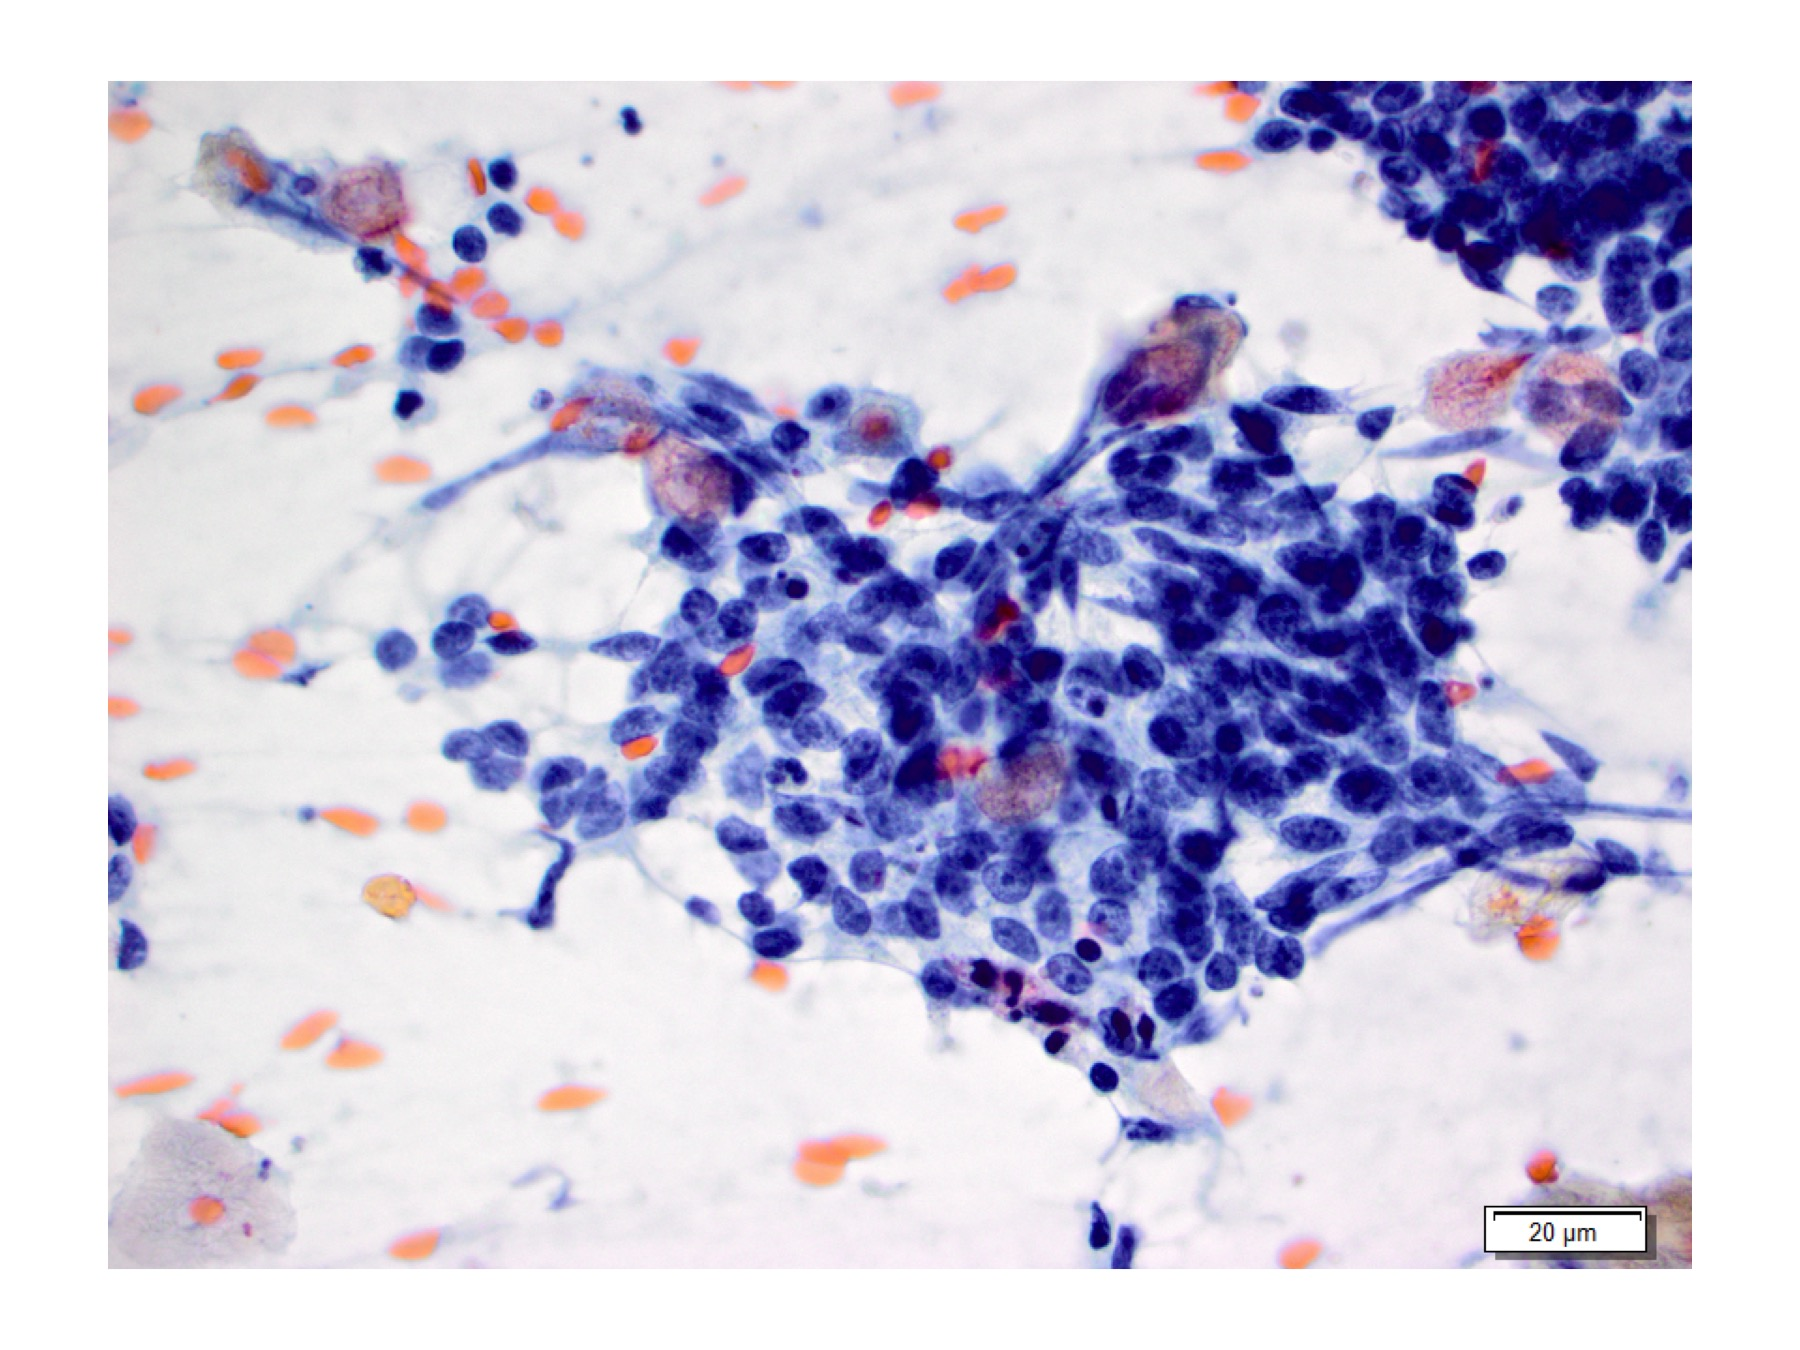 Figure 5:  High power vie of basaloid cells, Pap stain at 60x